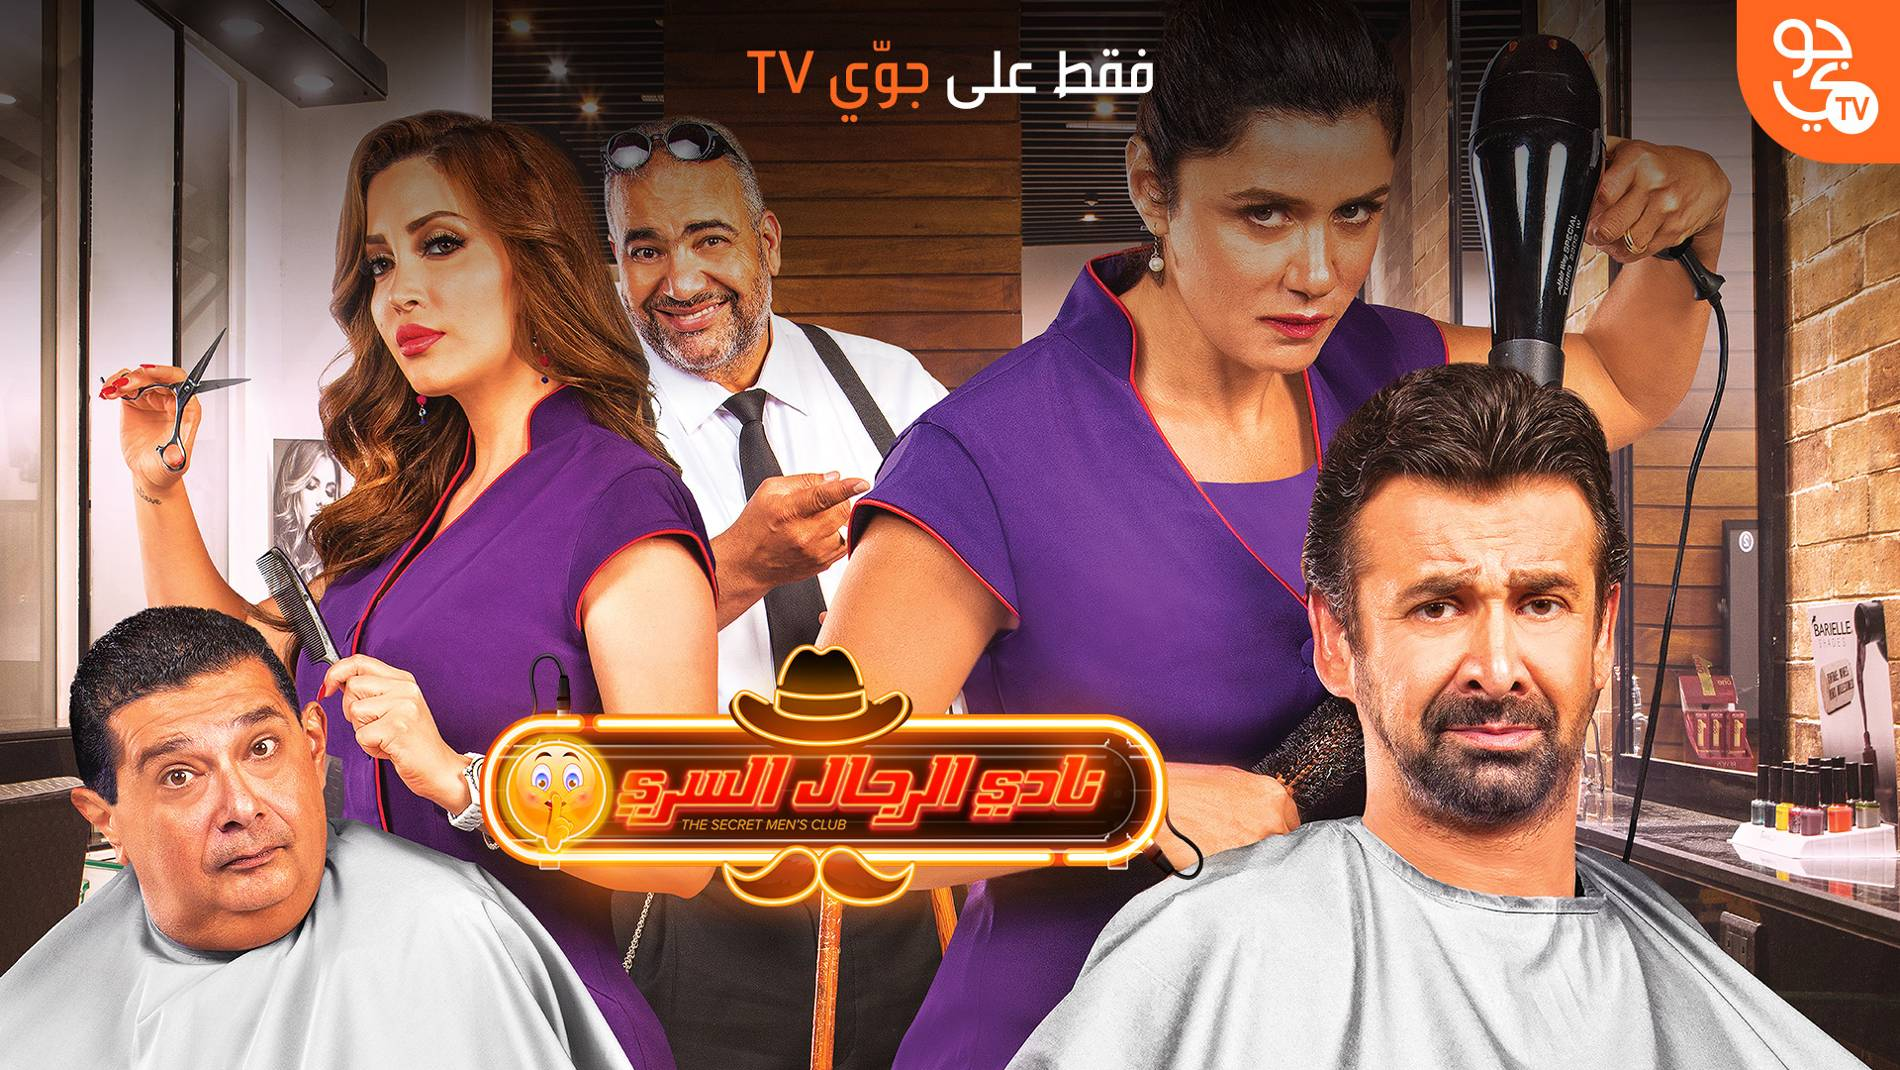 Jawwy TV - Watch Online movies, series & live TV   7 days free